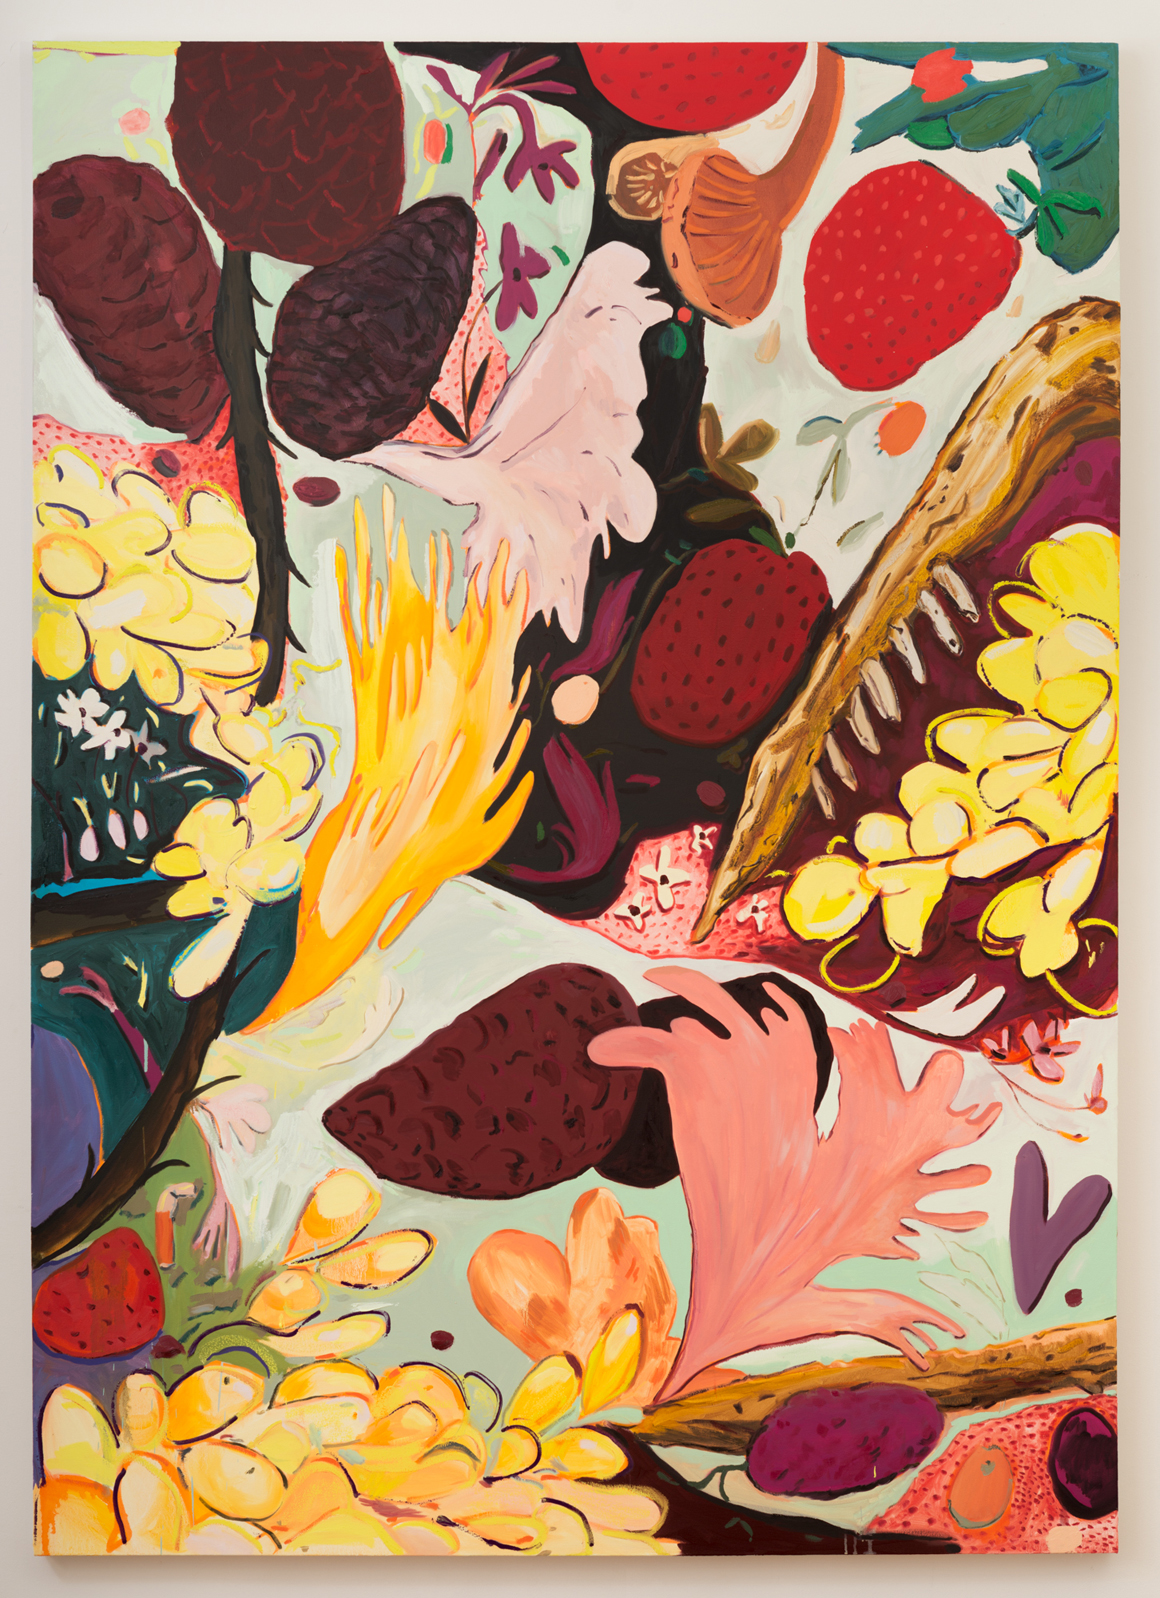 """<p><span class=""""name"""">Jasmine Little</span><br><em>Fruit Still Life</em><span class='media'>Oil on canvas</span>92 x 66 in (233.7 x 167.6 cm)<br>2018<br><a class='inquire' href='mailto:info@gildargallery.com?subject=Artwork Inquiry JLIT0007&body=I am interested in finding out more about Fruit Still Life by Jasmine Little'>Inquire</a></p>"""